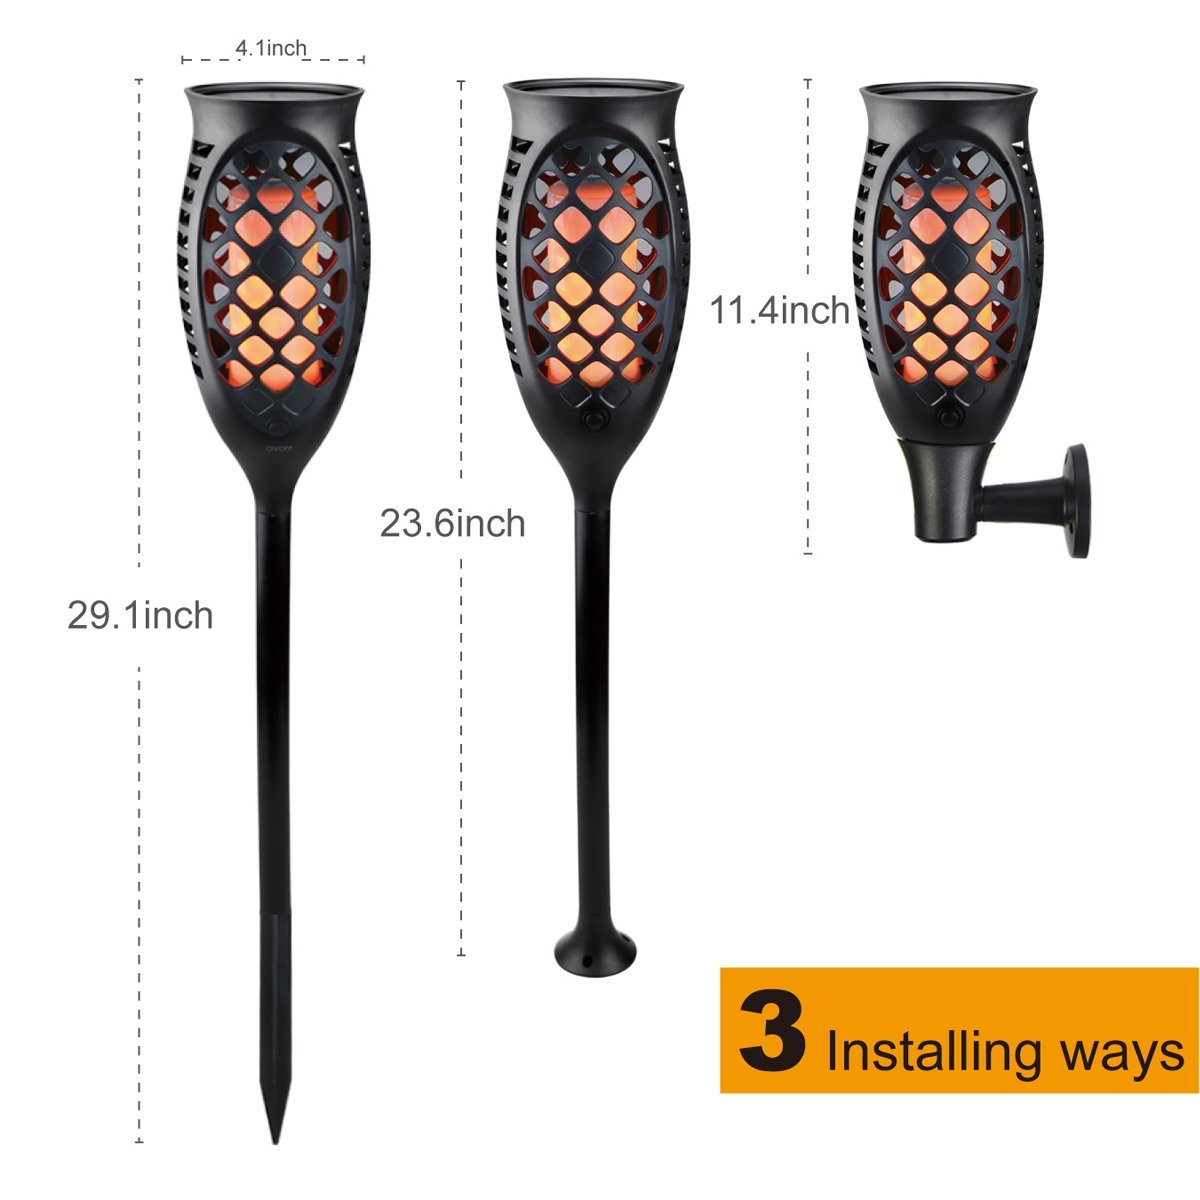 Juhefa Solar Lights Outdoor, Solar Torch Light Flickering Flame 99 LED Waterproof Garden Lighting Pathway Patio Landscape Decoration, 3 Modes & 3 Mounting Options, Dusk to Dawn Auto On/Off (4) by Juhefa (Image #6)